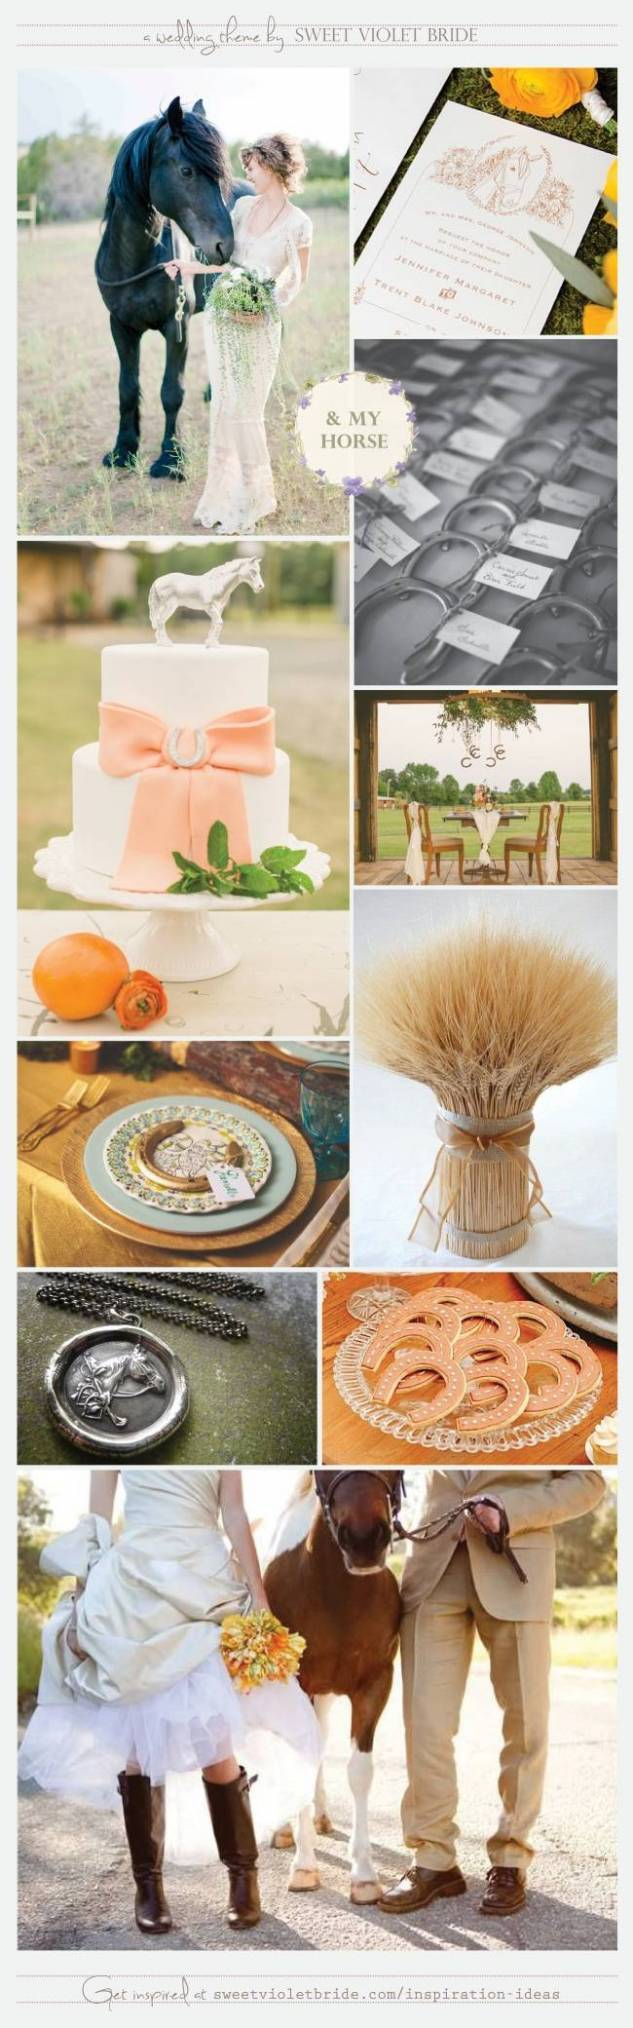 Equestrian, Horse Wedding Theme by Sweet Violet Bride